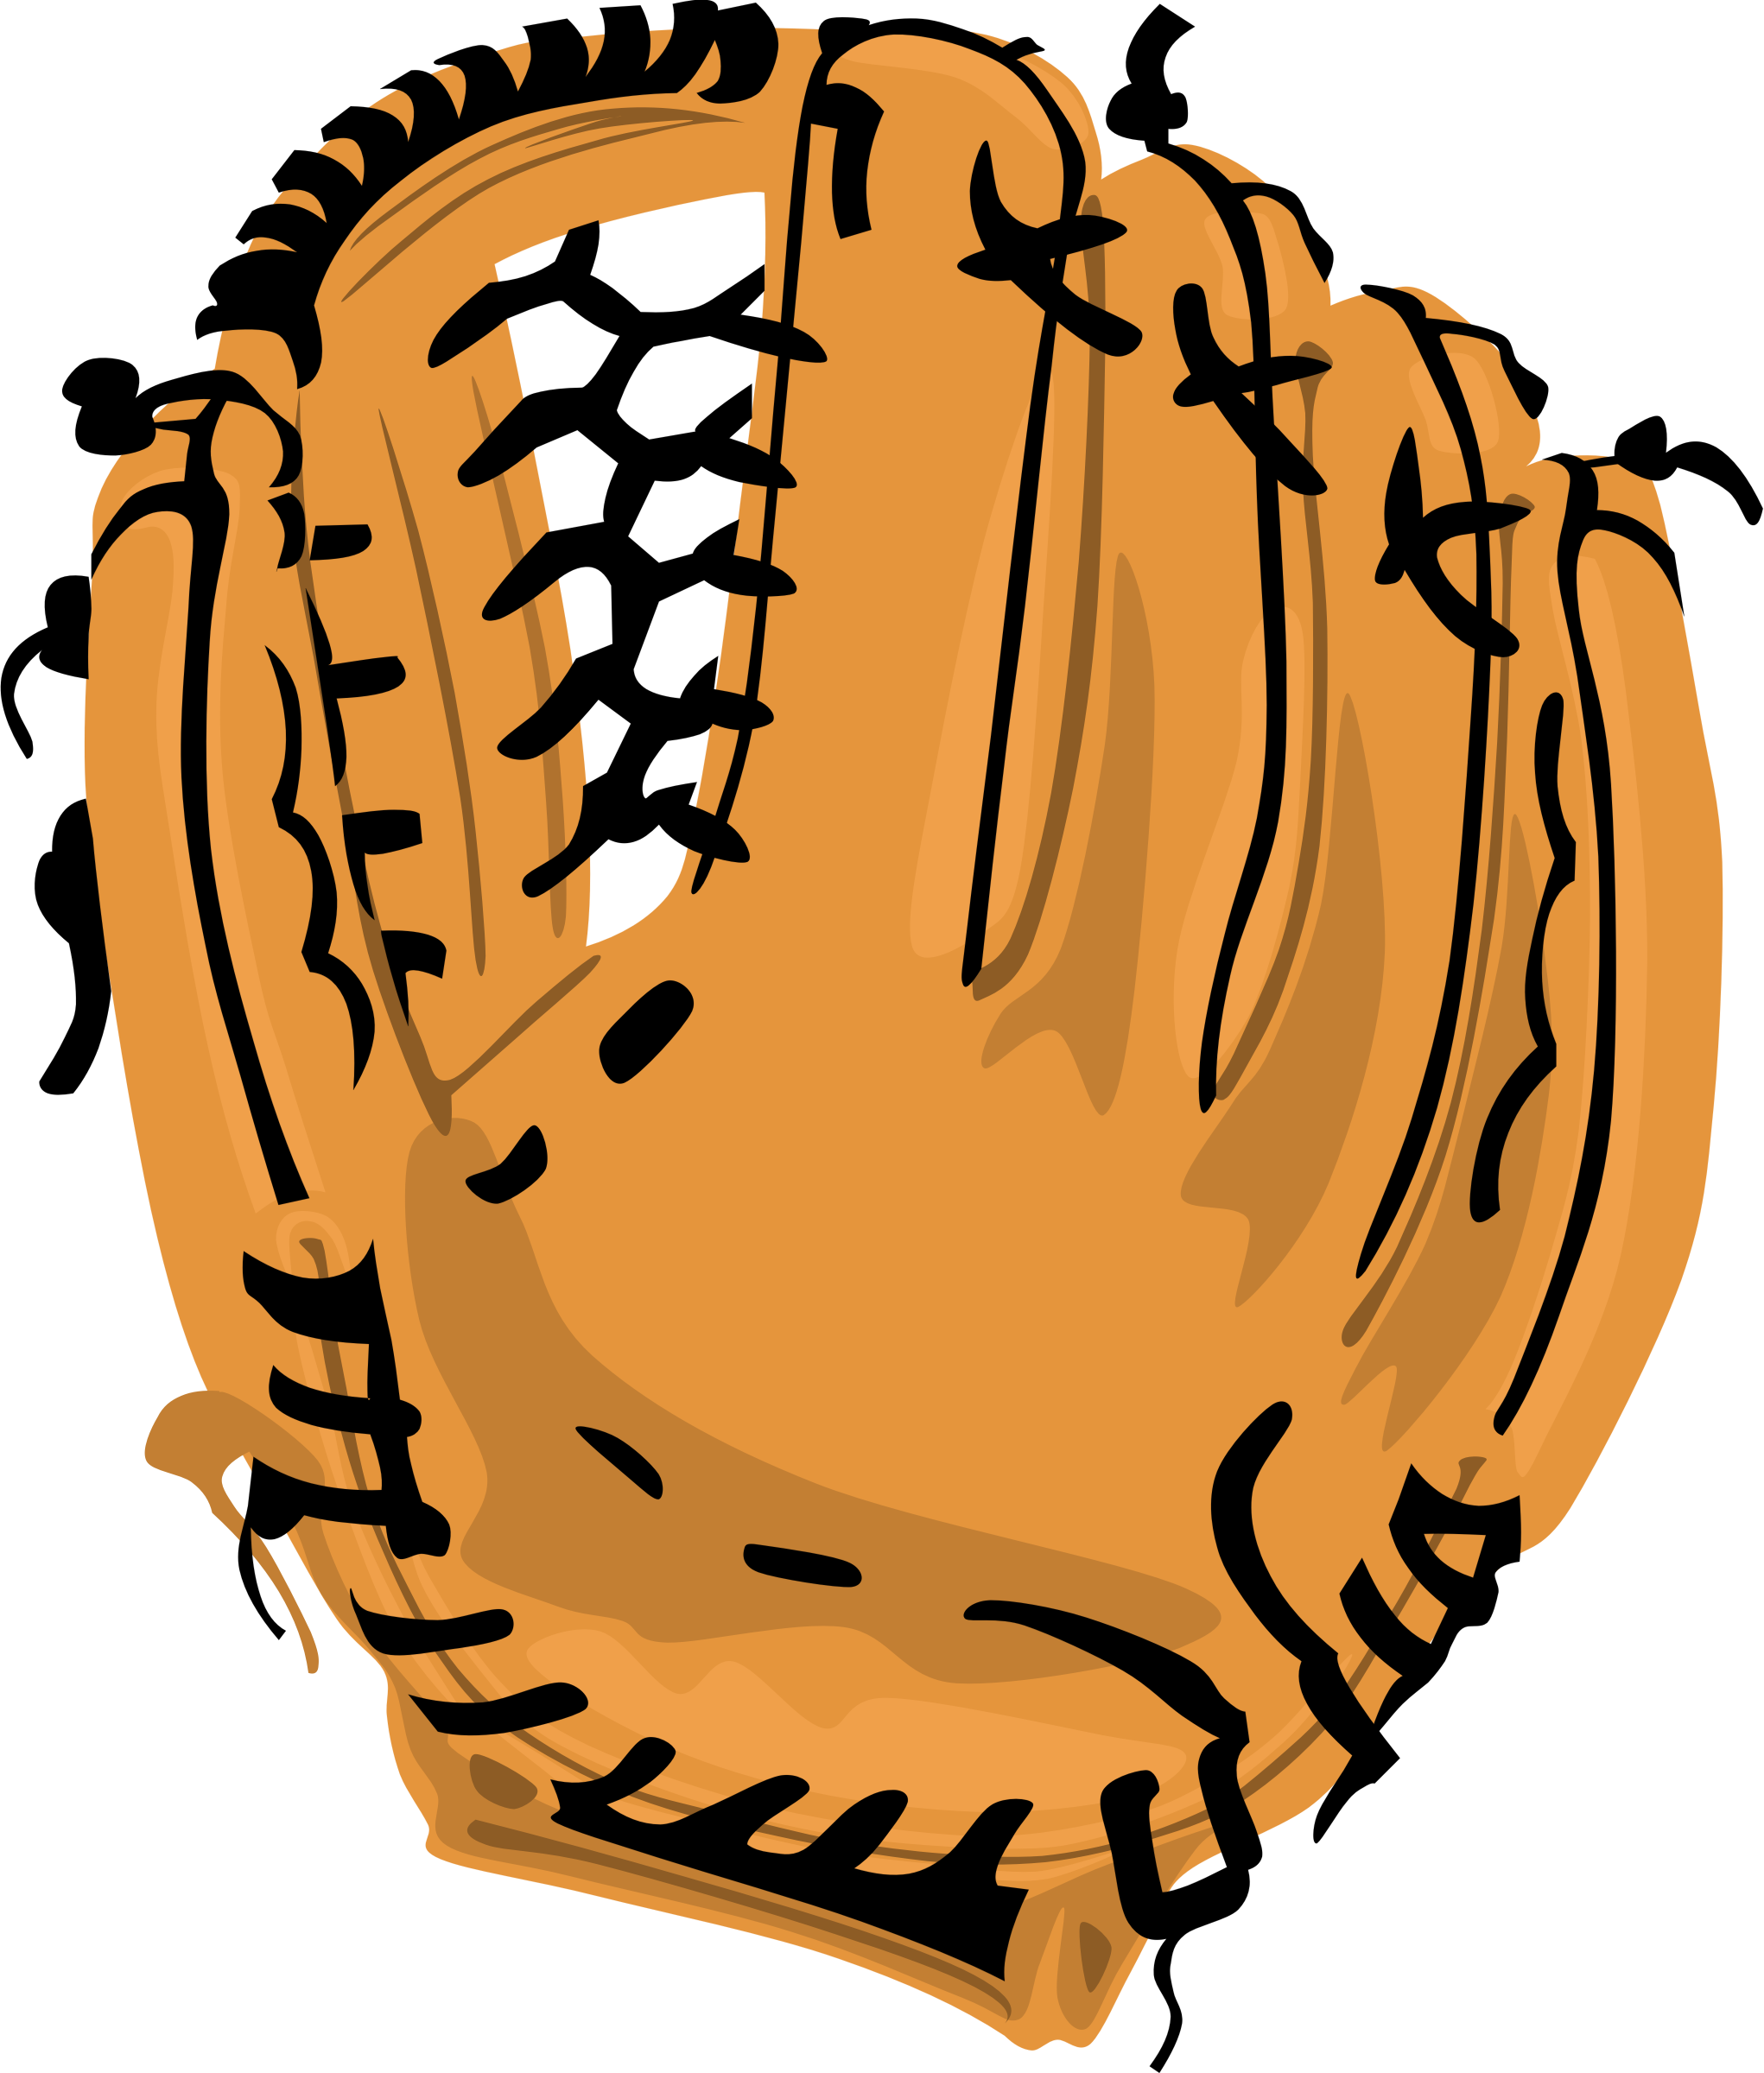 Baseball glove clipart png freeuse stock Clipart - Baseball glove png freeuse stock